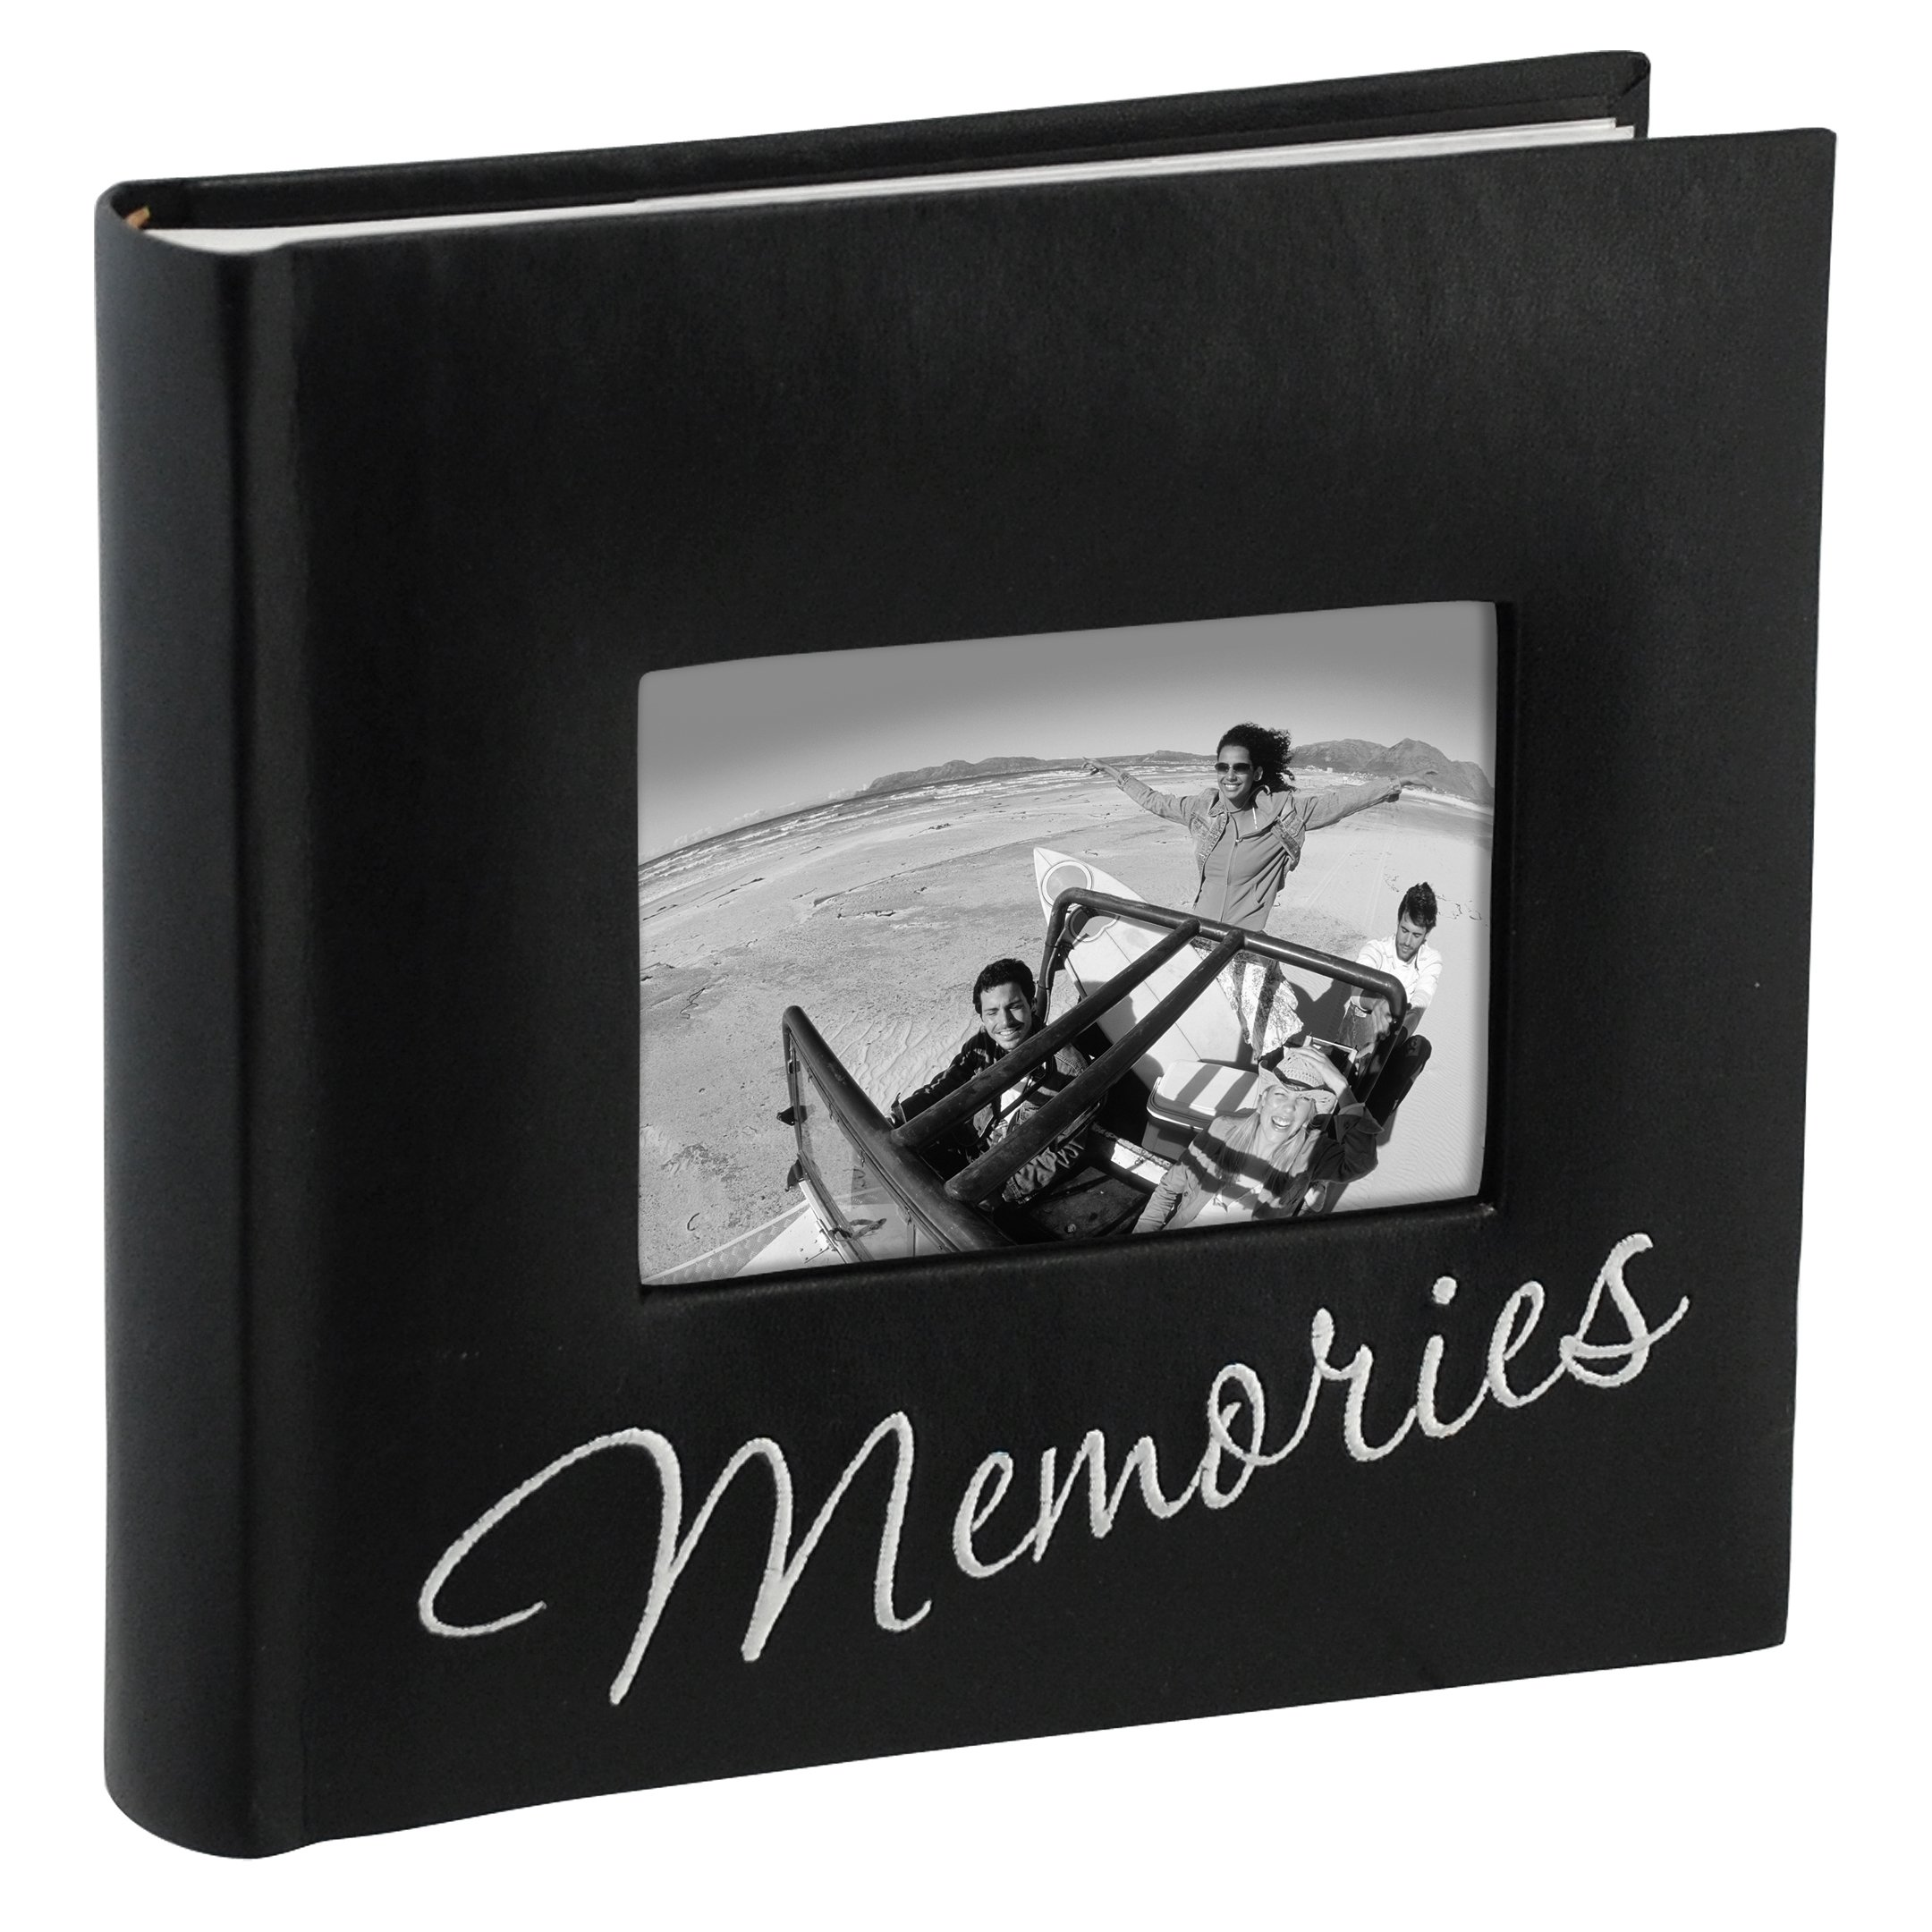 Malden International Designs Memories Cursive 2-Up With Memo Space Photo Album, 160-4x6, Black by Malden International Designs (Image #1)